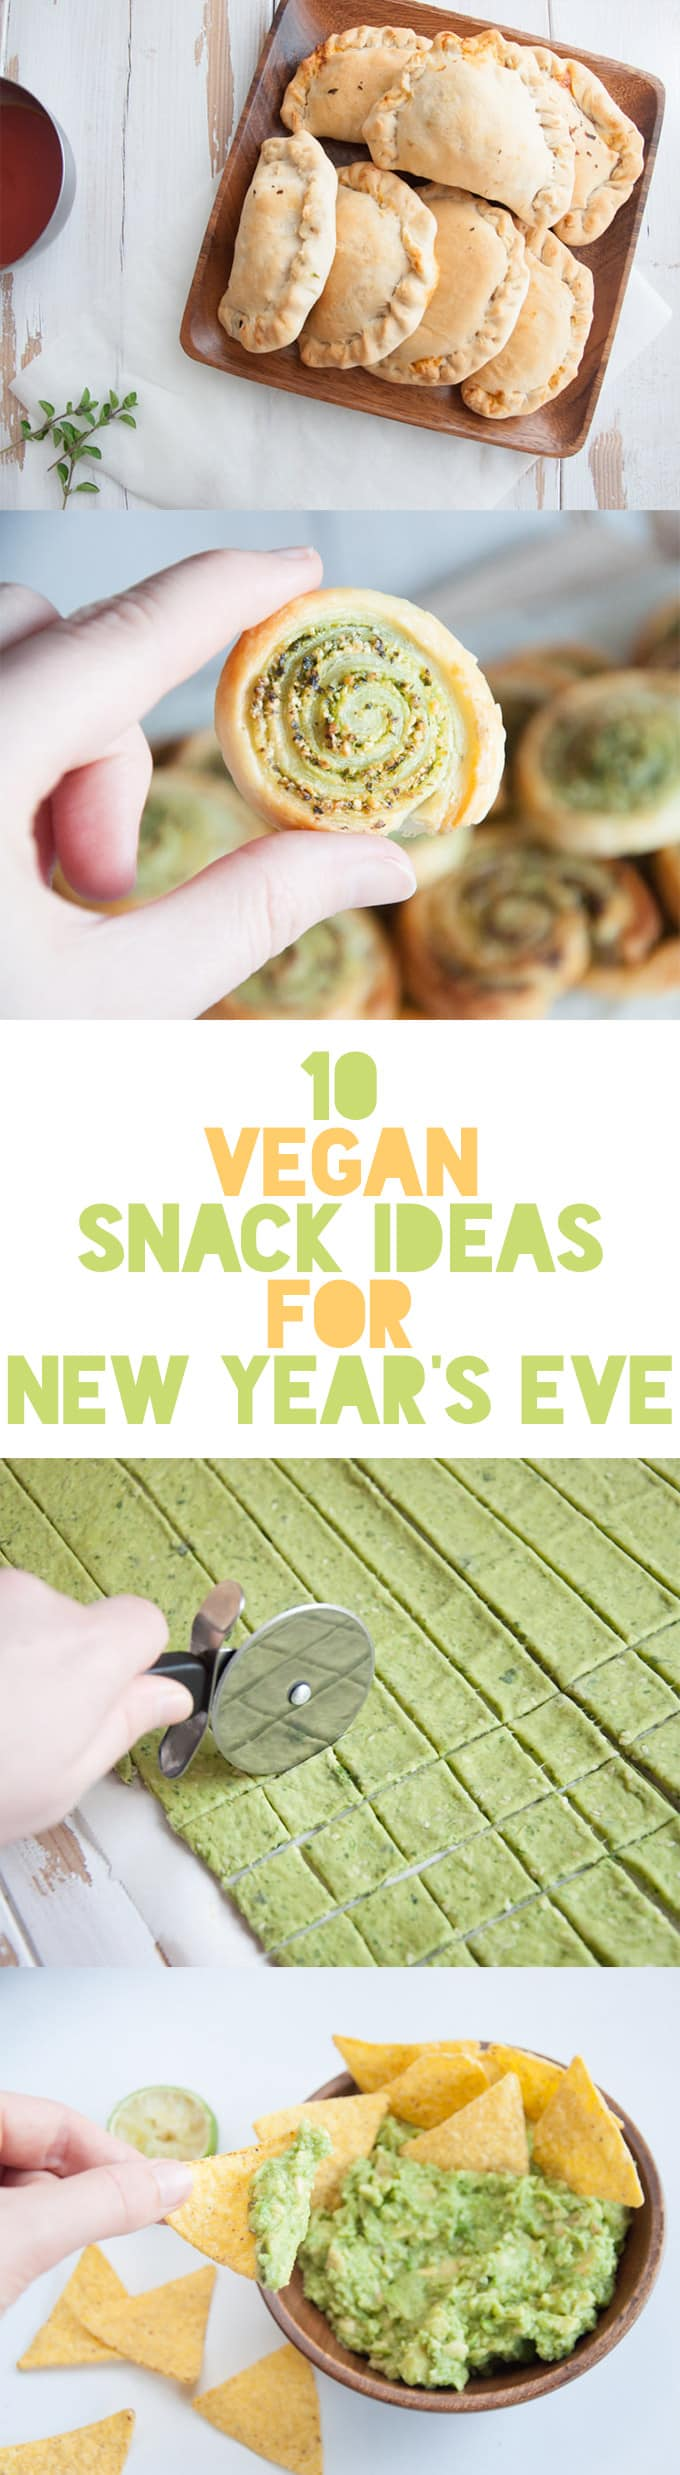 10 Vegan Snack Ideas for New Year's Eve | ElephantasticVegan.com